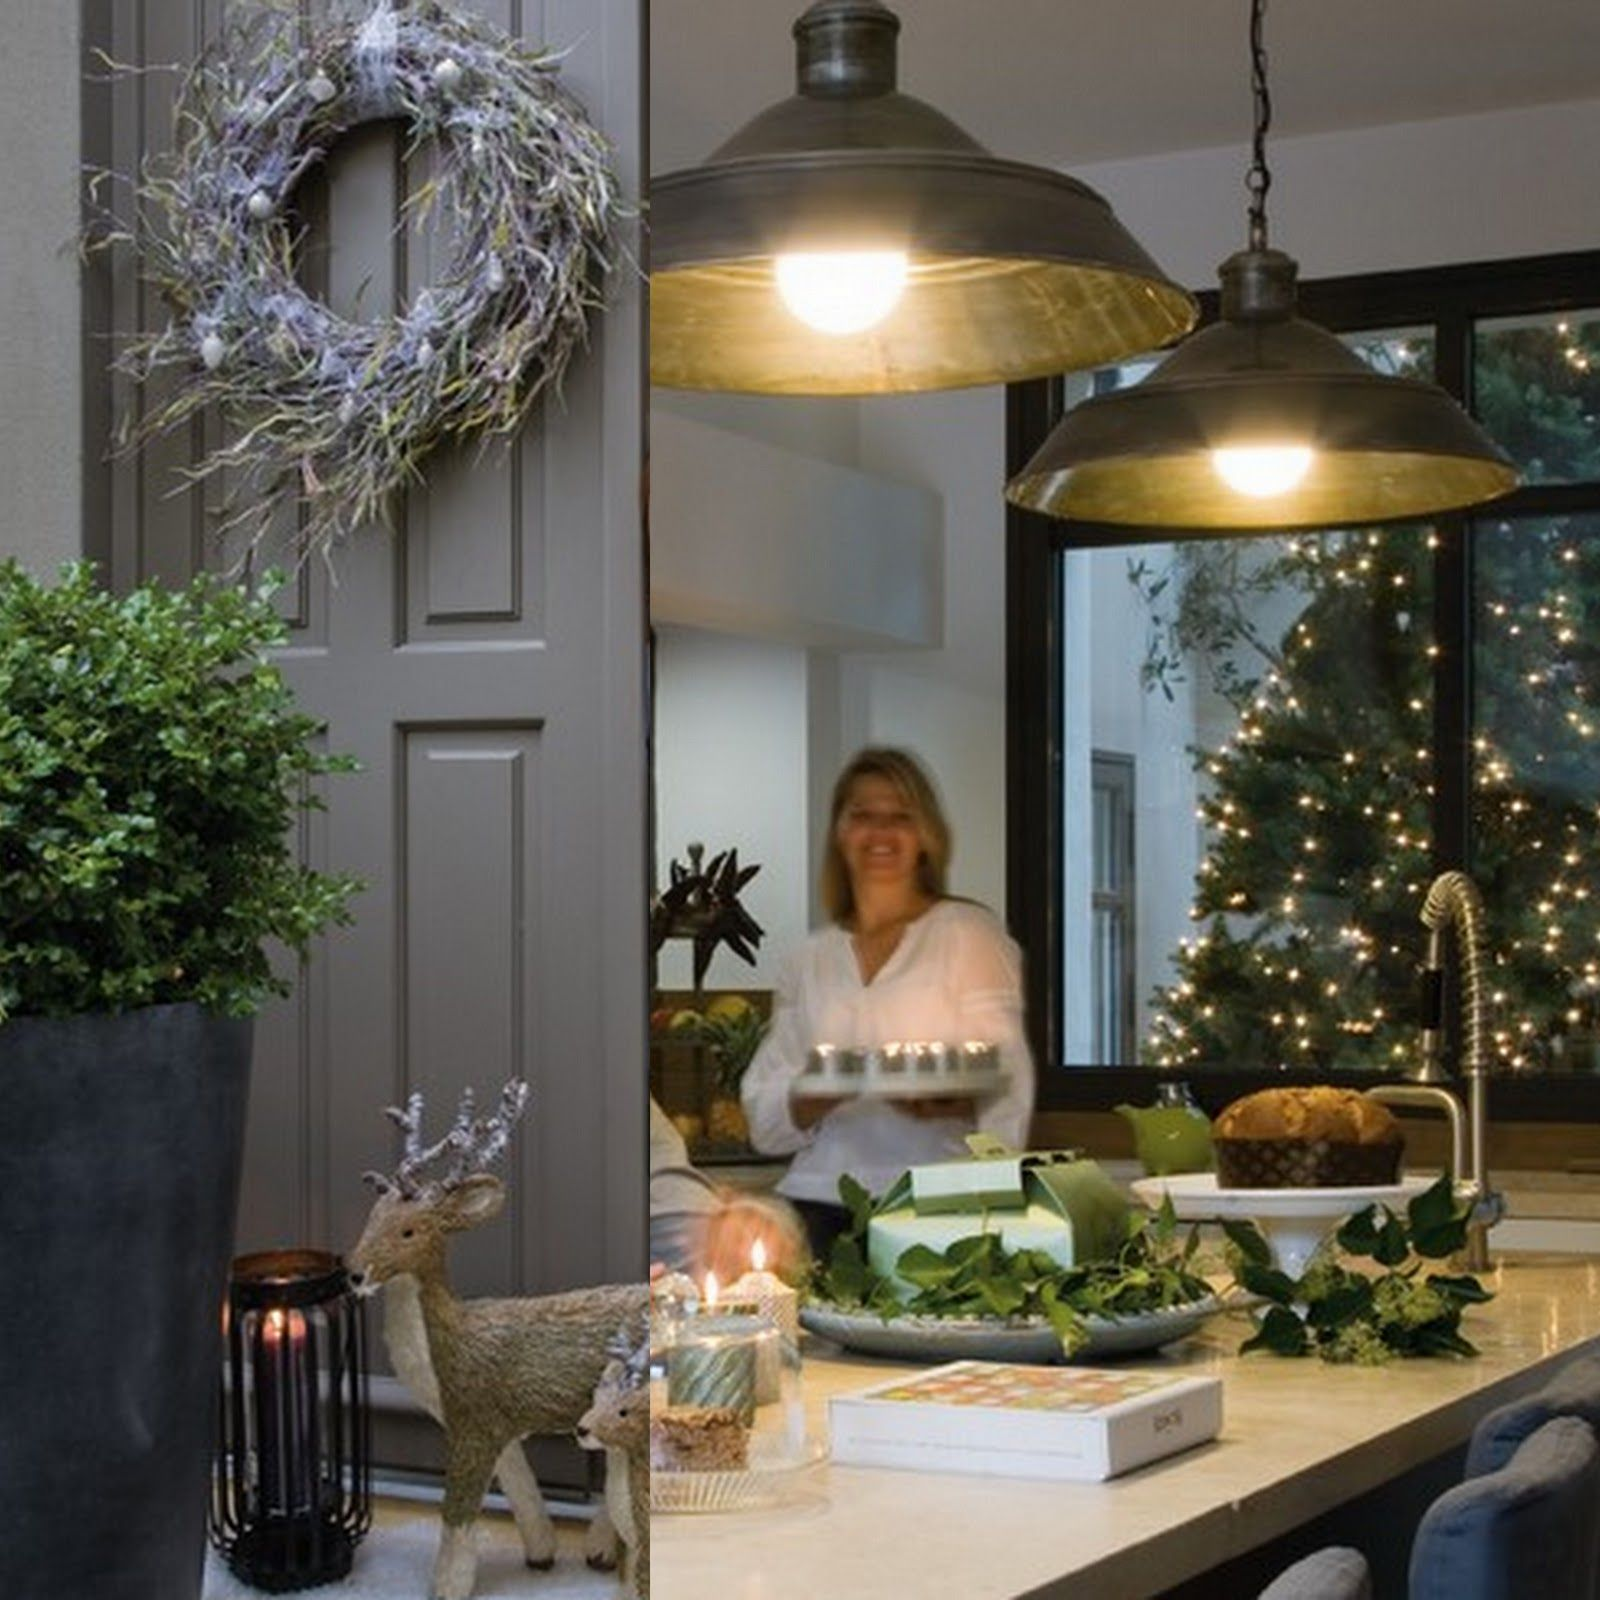 Kitchen Window From Outside: The Whole Look, The Tree Decorated Outside The Kitchen